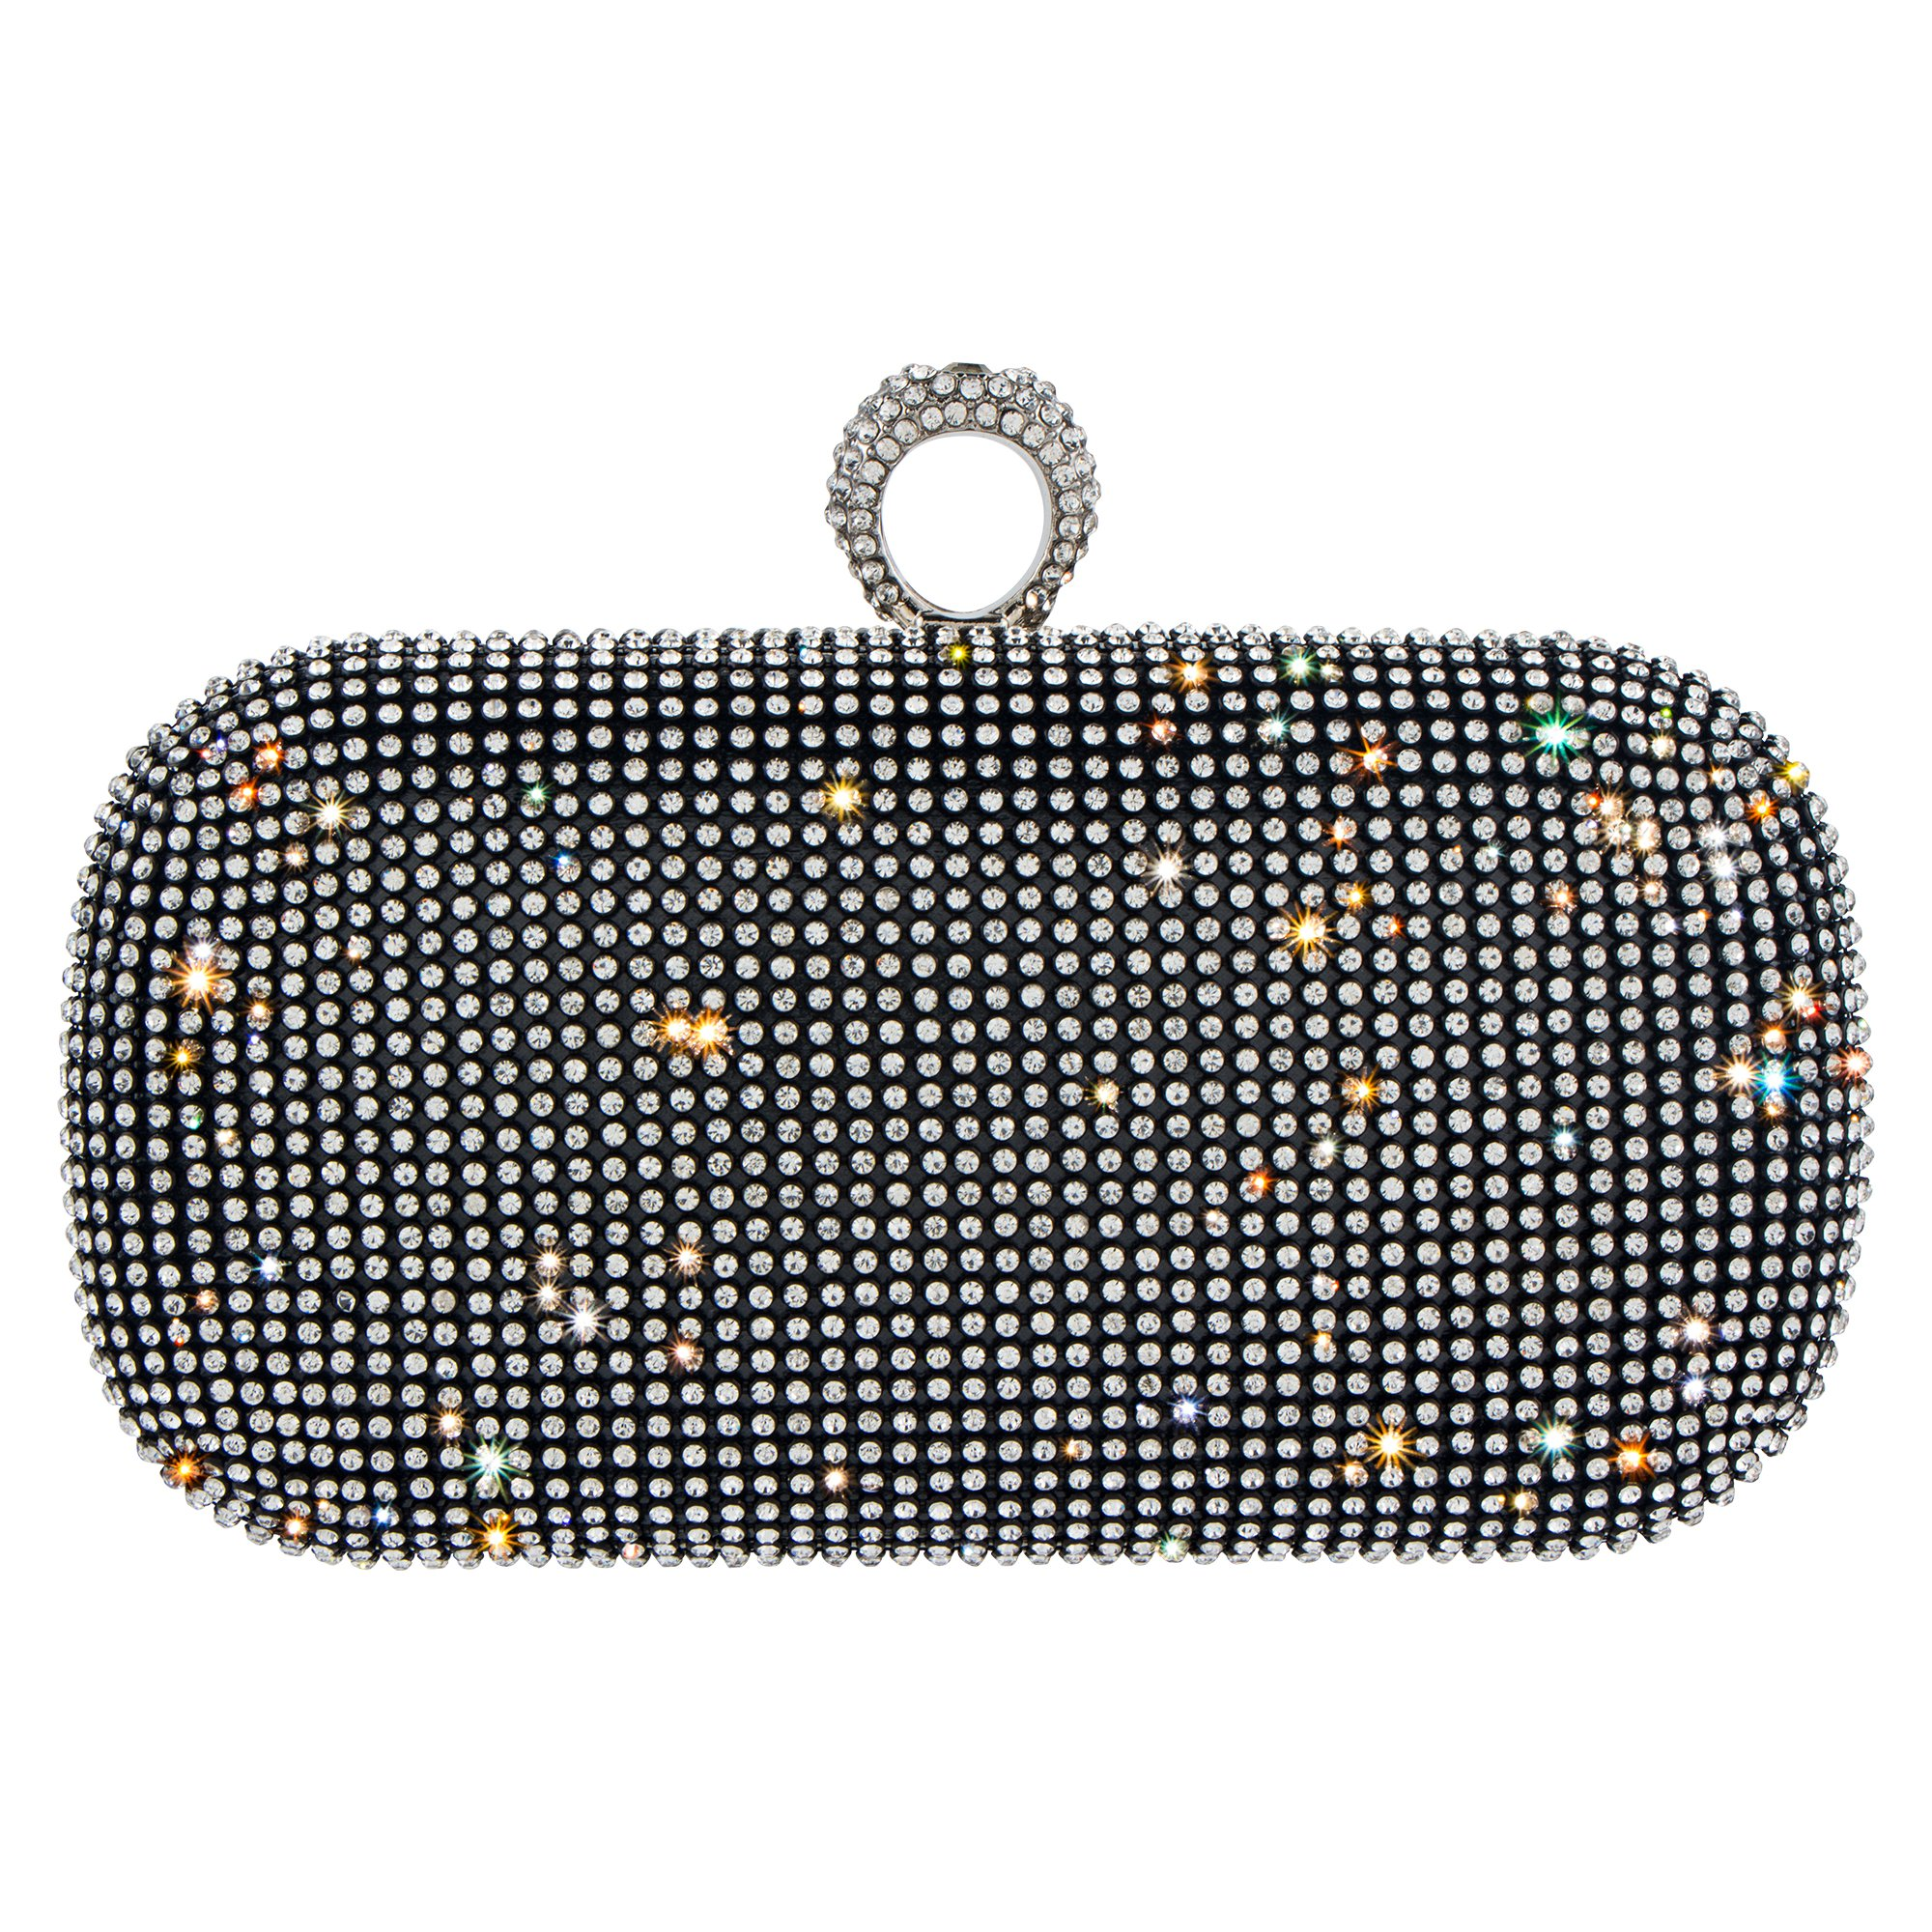 Bagood Women's Shining Rhinestones Square Shape Knuckles Evening Bag Hard Case Clutches Purses Large Black